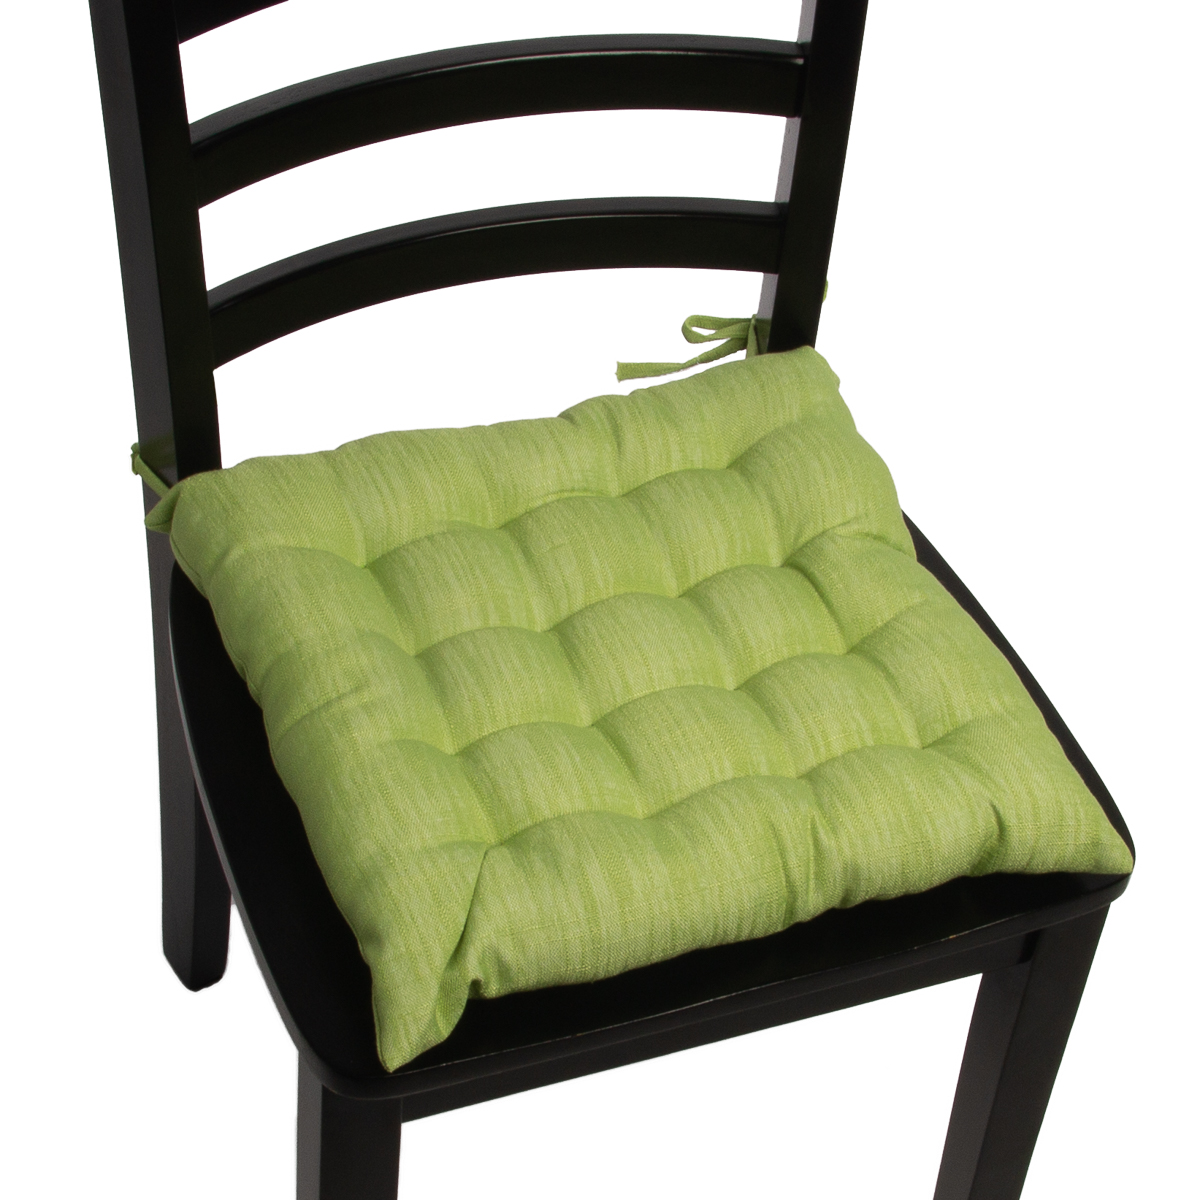 4pk dream home chair pads square tufted cushion seat cushions pillows with ties ebay. Black Bedroom Furniture Sets. Home Design Ideas